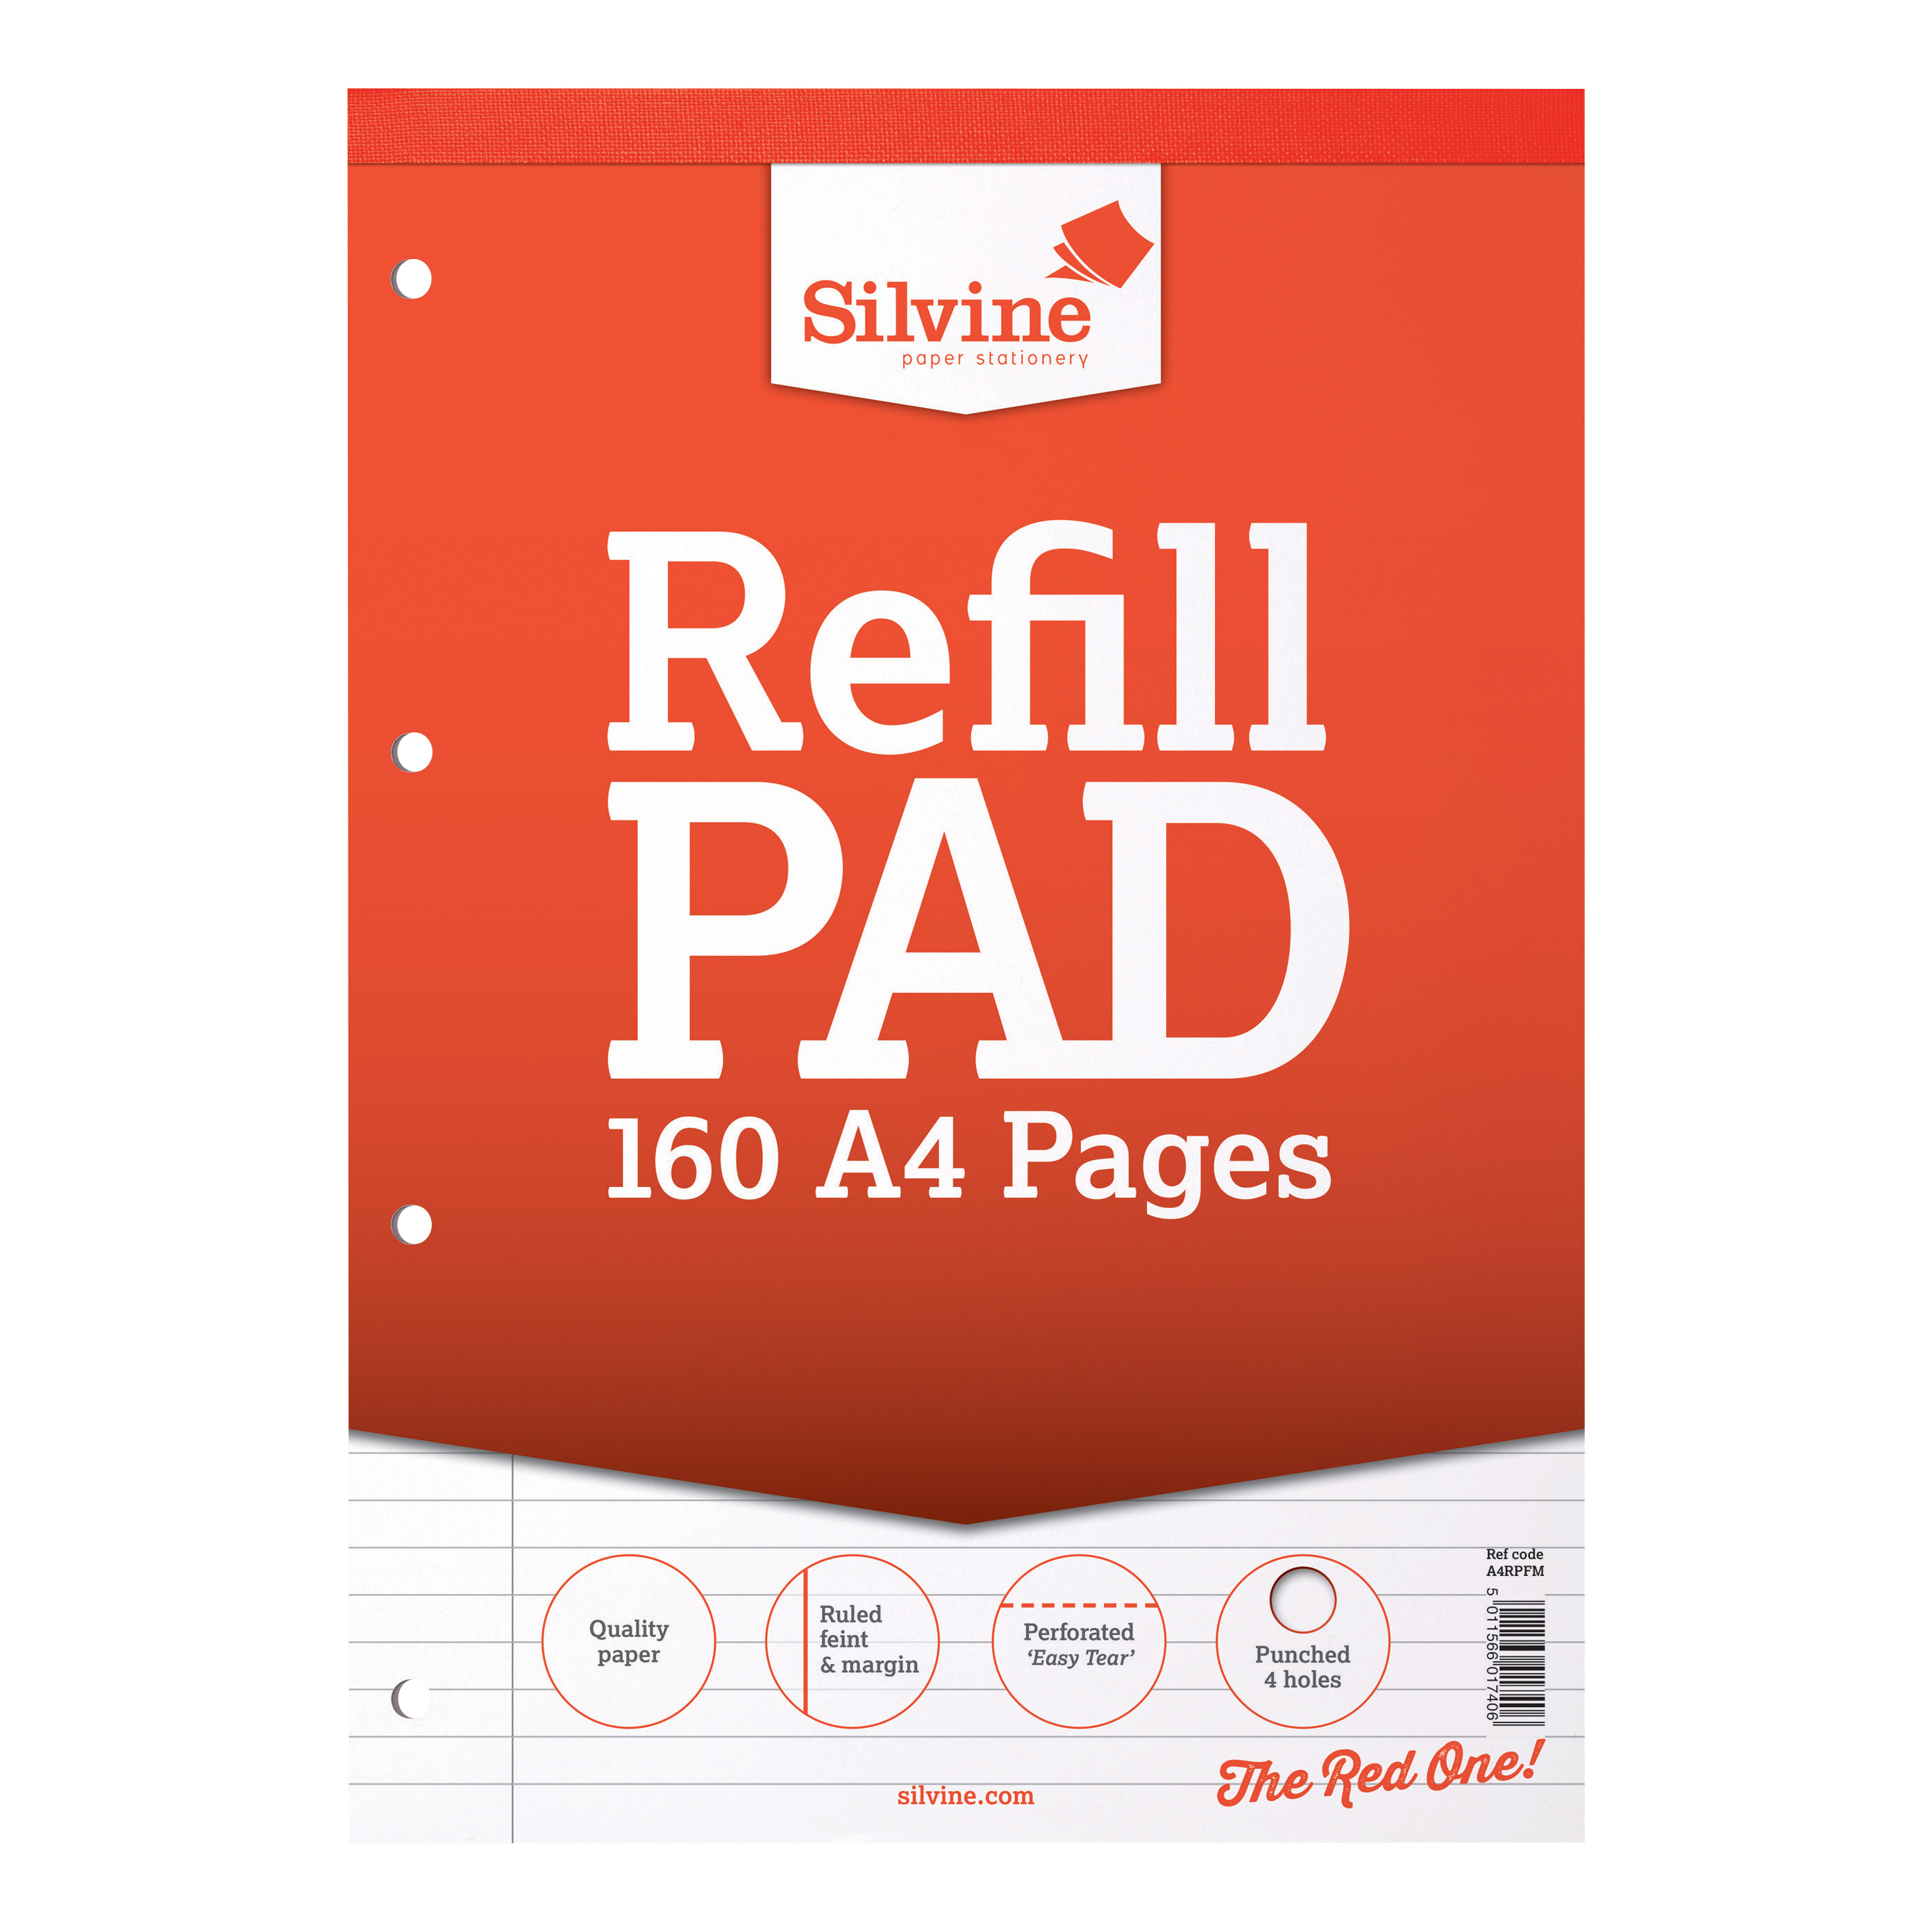 Refill Pads Silvine Refill Pad Headbound 75gsm Ruled Margin Perf Punched 4 Holes 160pp A4 Red Ref A4RPFM Pack 6